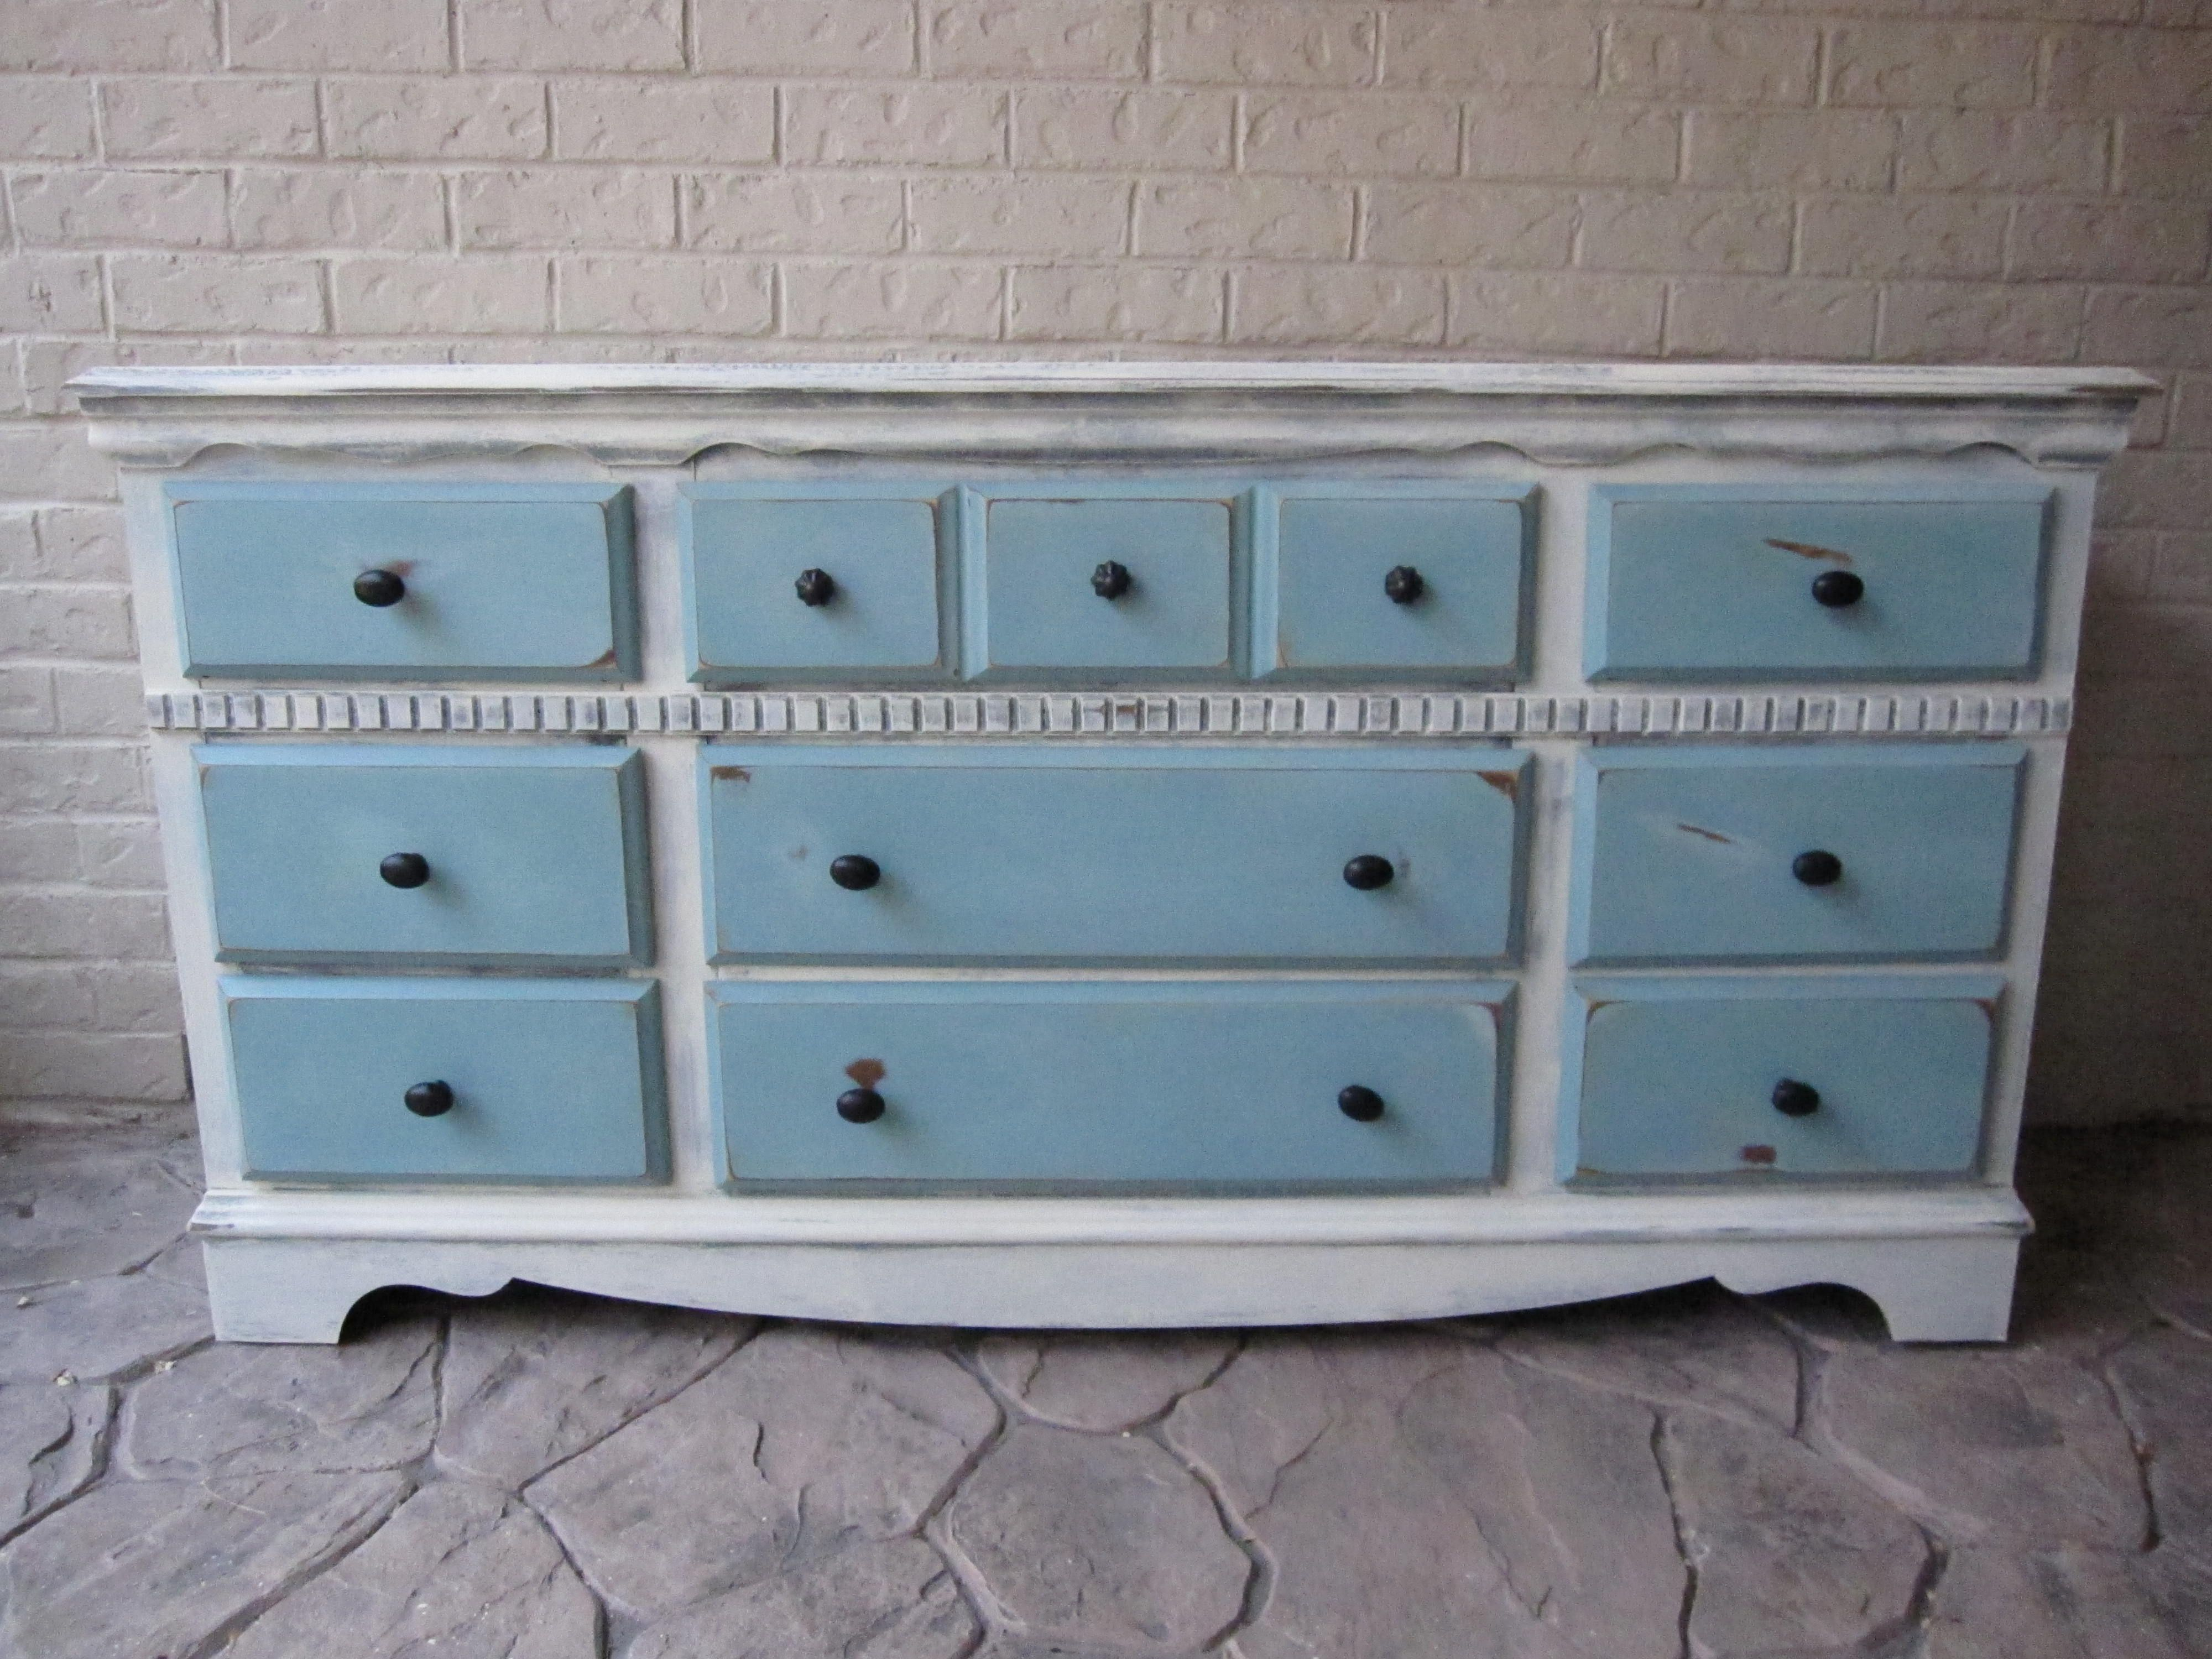 Bright face paint body face paints 1003 blue paint blue color - Custom Refinished Dresser Old White Provence Blue